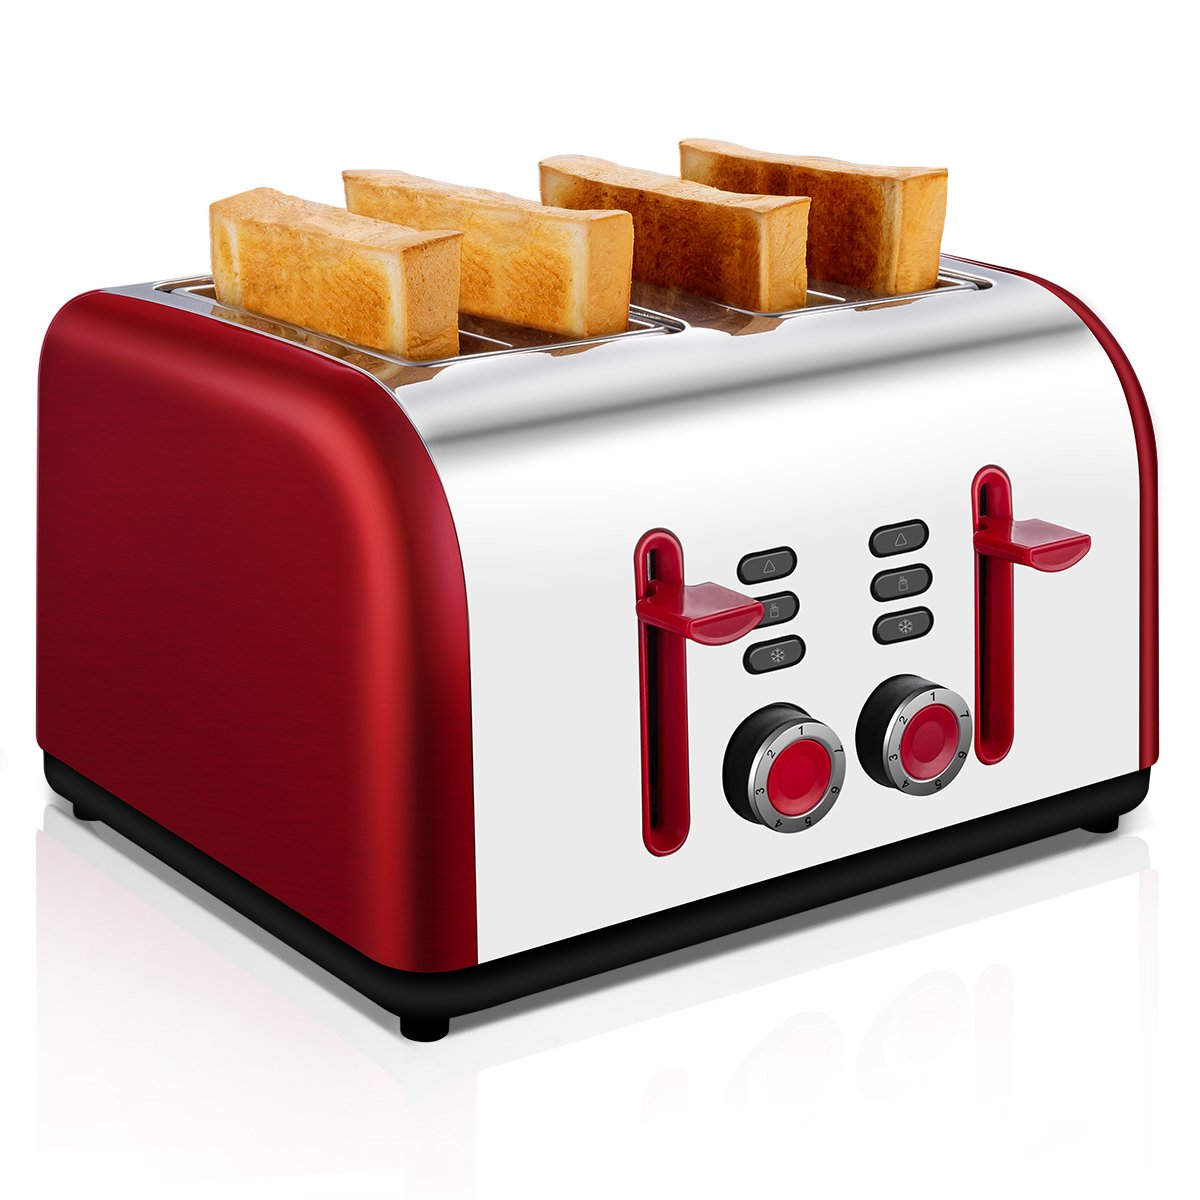 4-Slice Toaster, TOBOX Stainless Steel Toasters 4 Wide Slots with 7 Bread Browning Settings, REHEAT/DEFROST/CANCEL Function, 1400W, Red